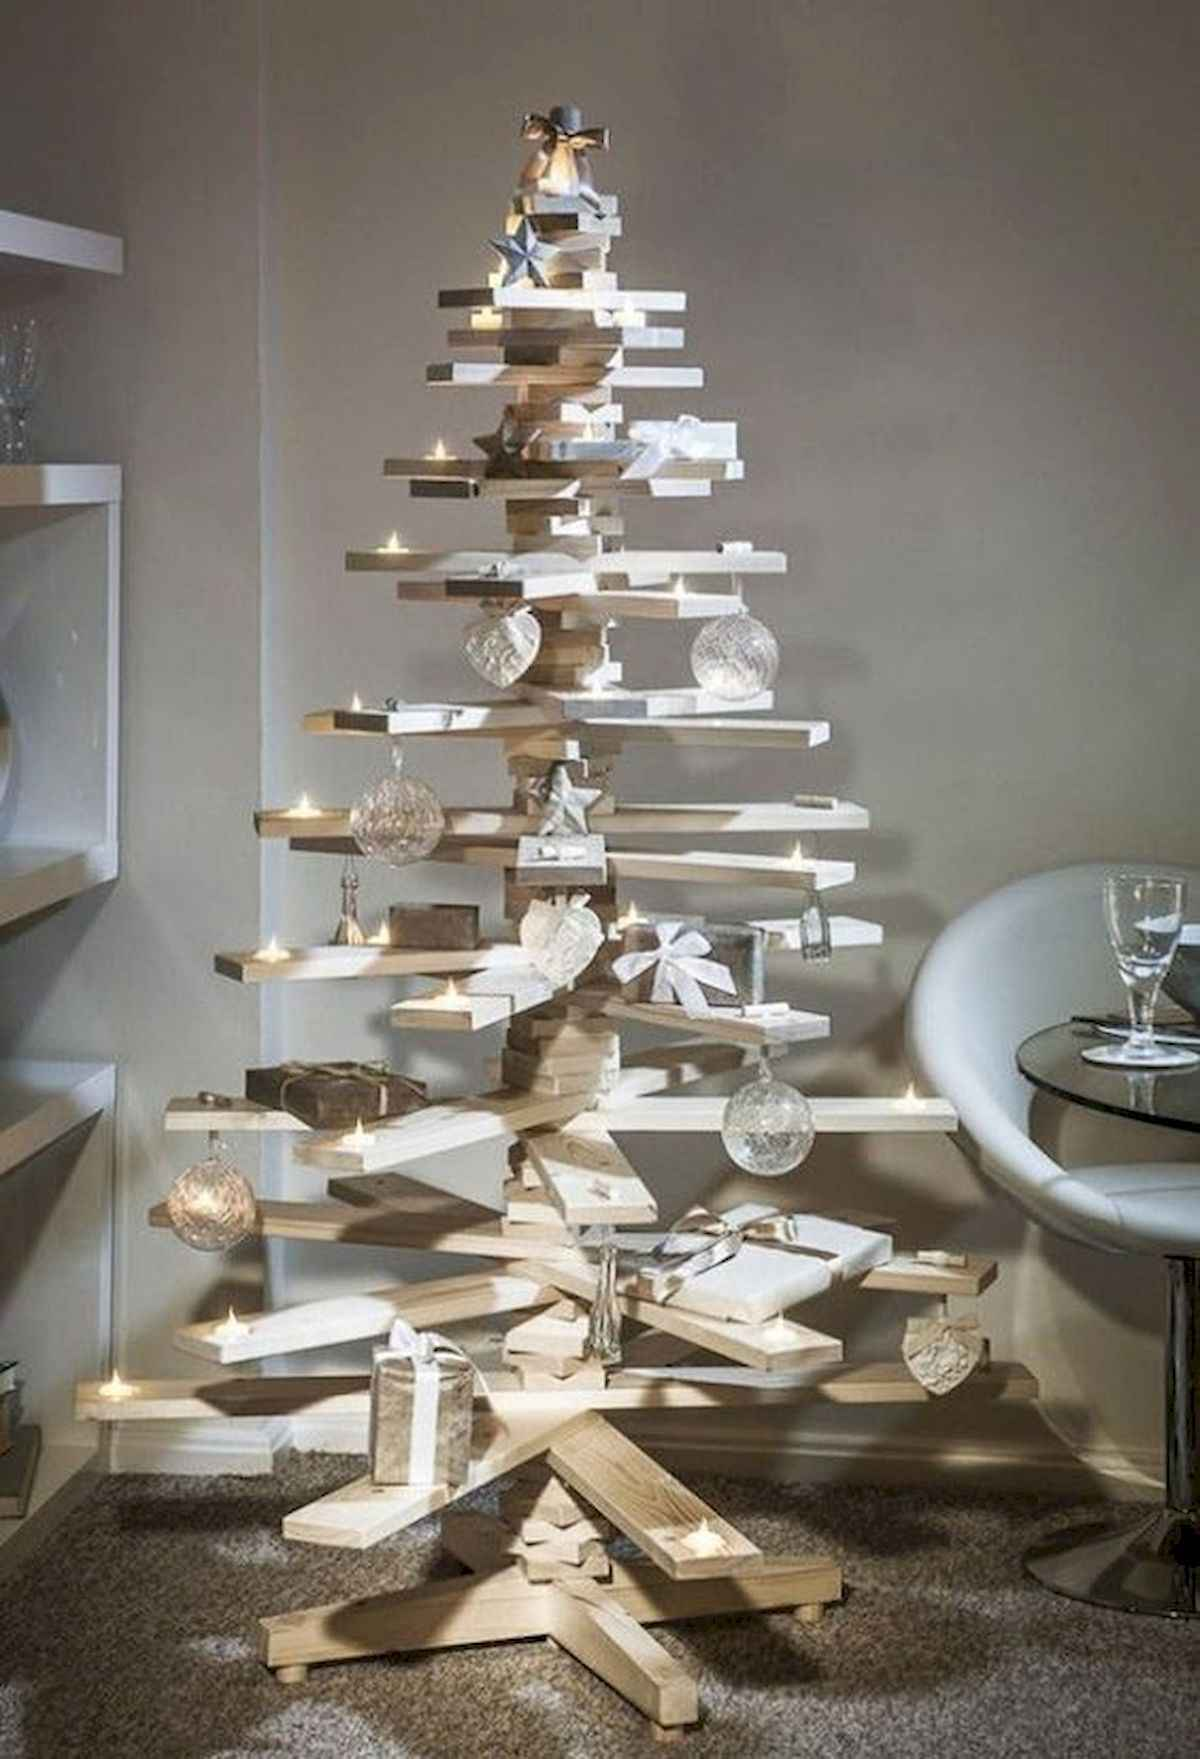 60 awesome christmas tree decorations ideas (43)